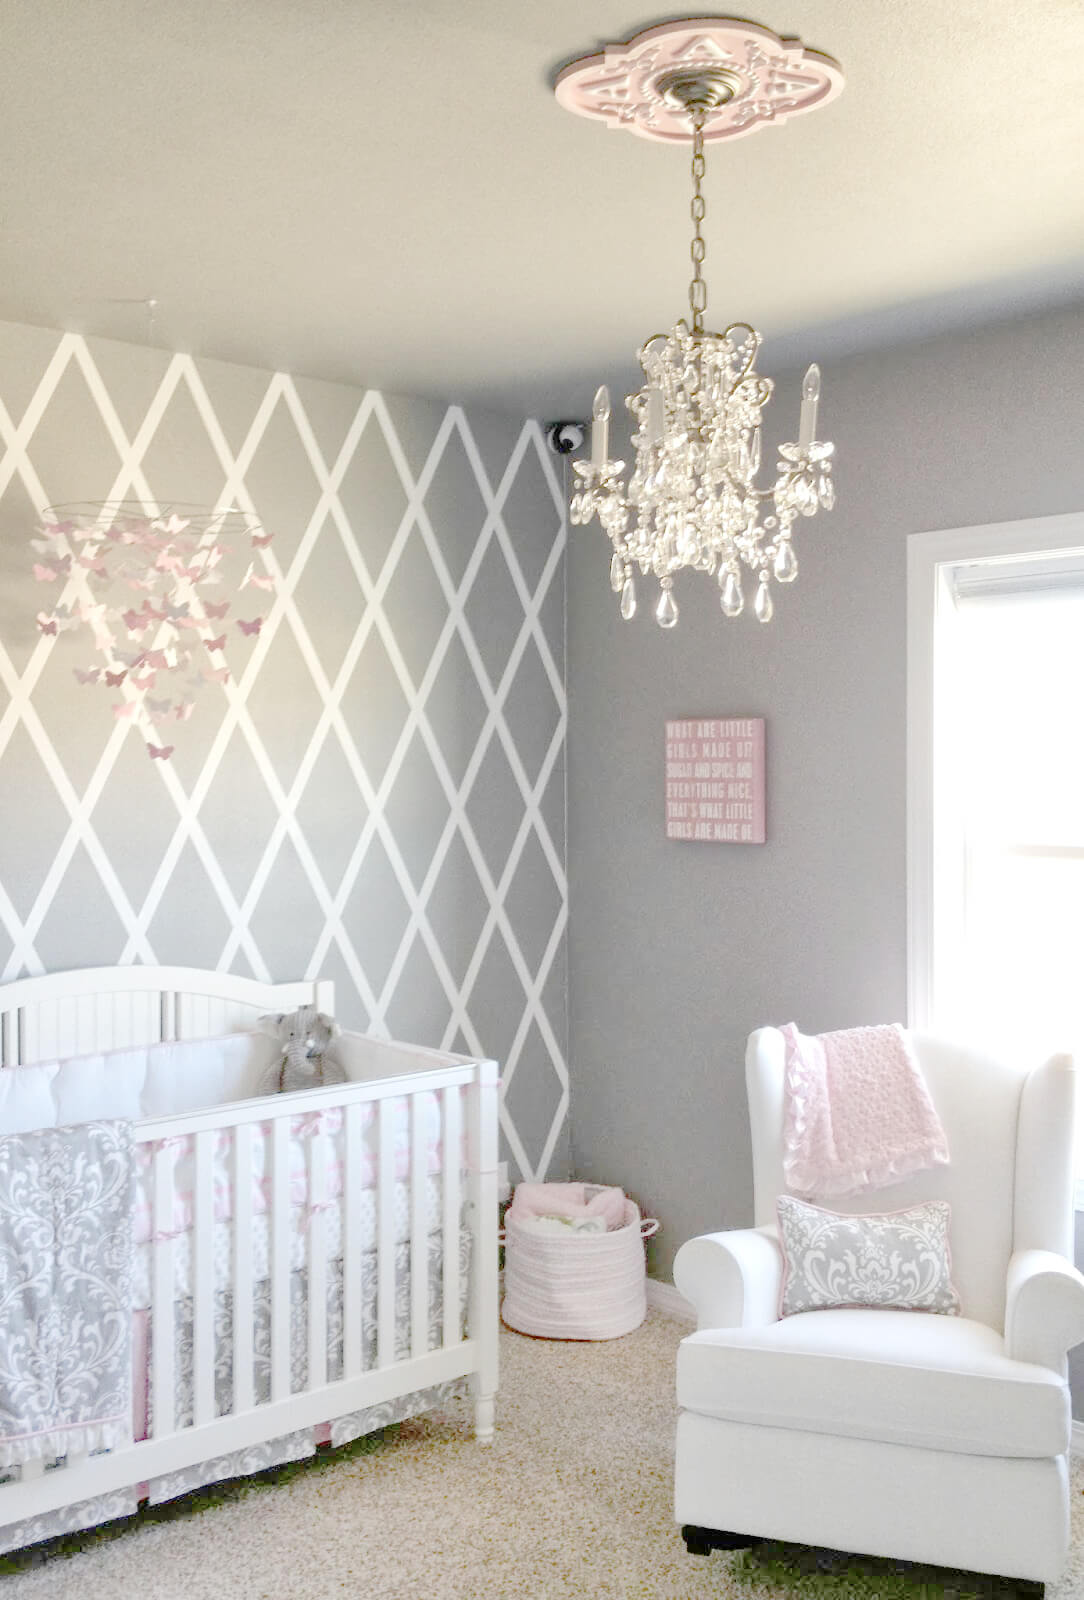 35+ Best Nursery Decor Ideas and Designs for 2018